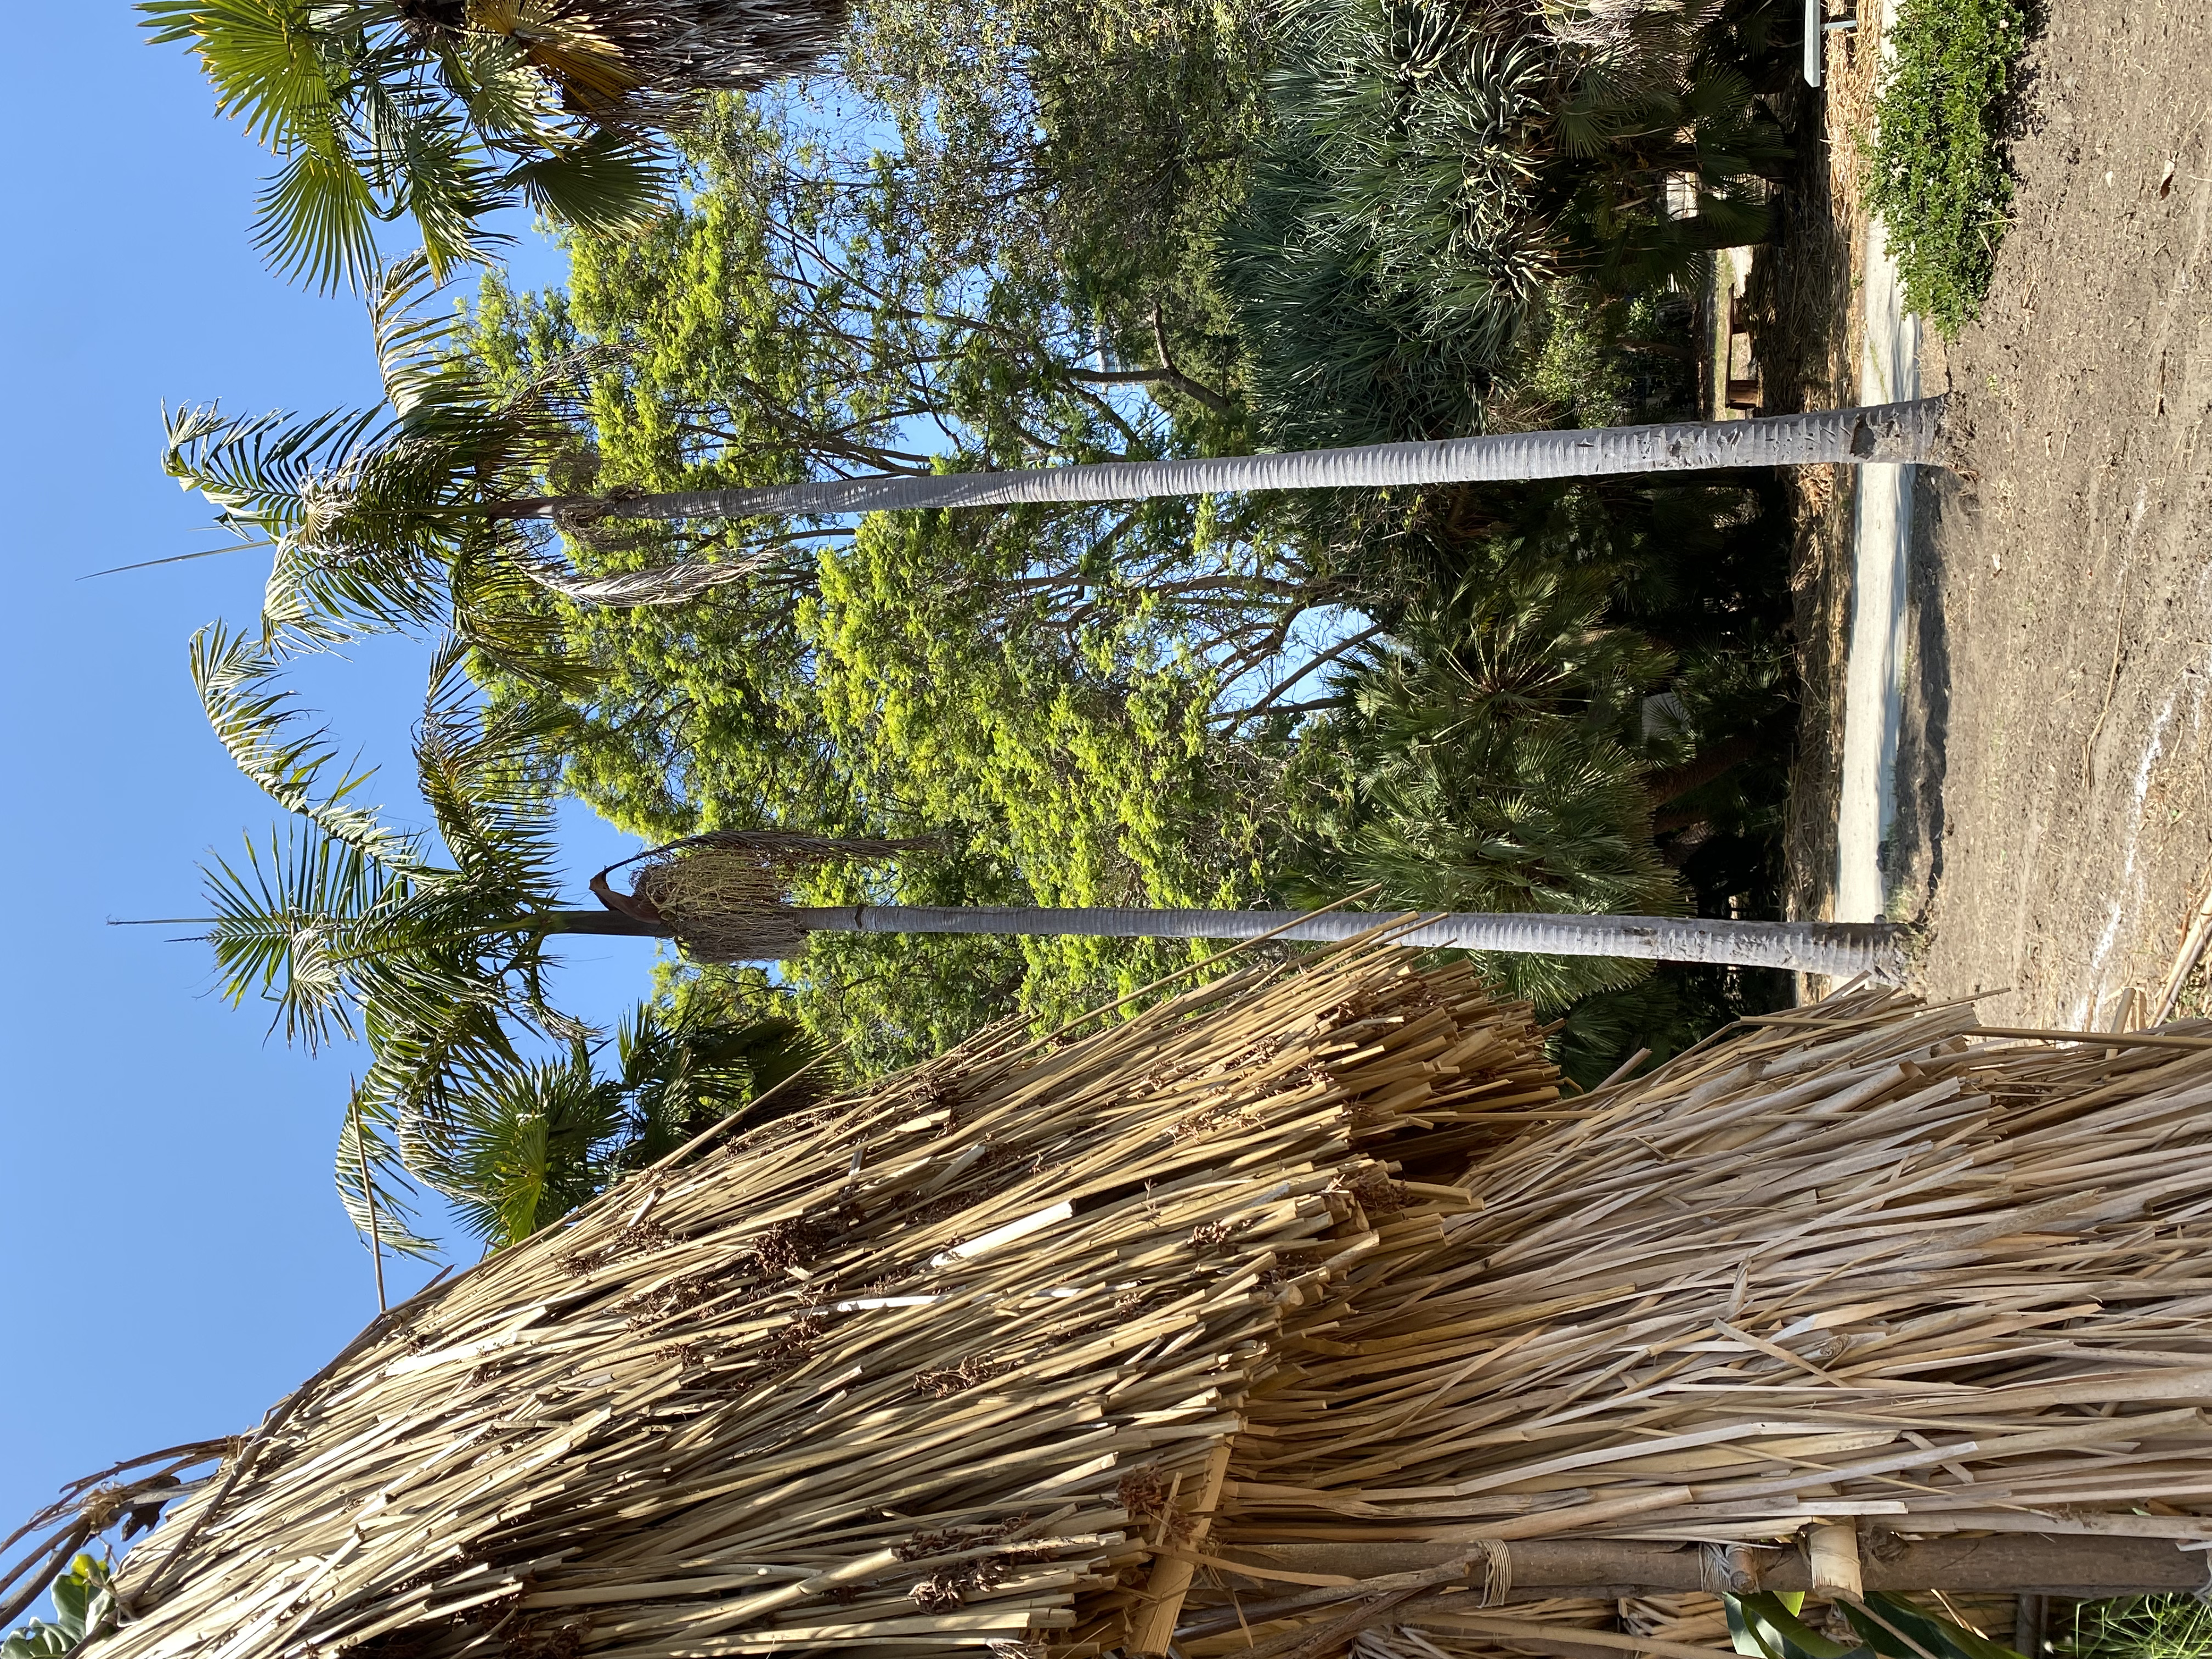 Archive of Healing Receives Grant to Support Indigenous Tongva Wellness